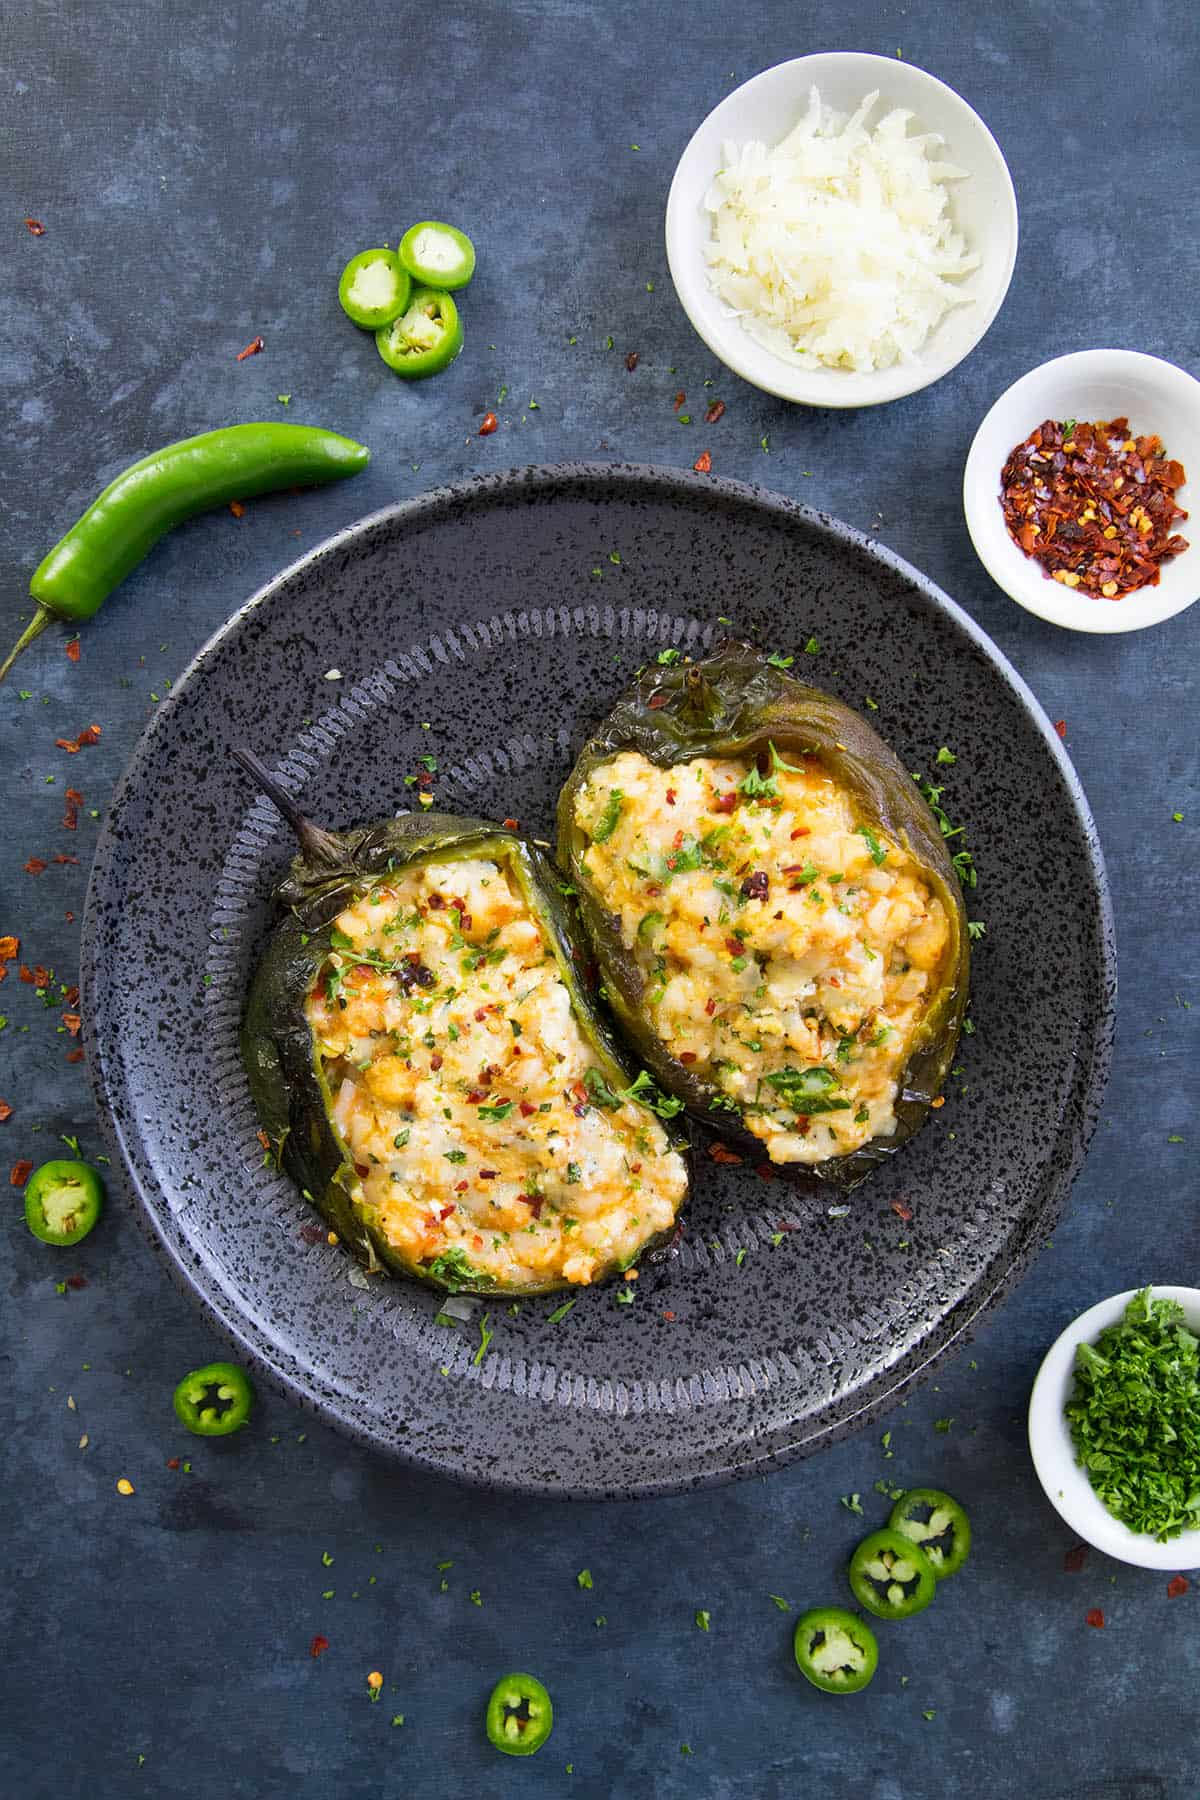 These Cajun Shrimp Stuffed Poblano Peppers are plated and ready to enjoy.